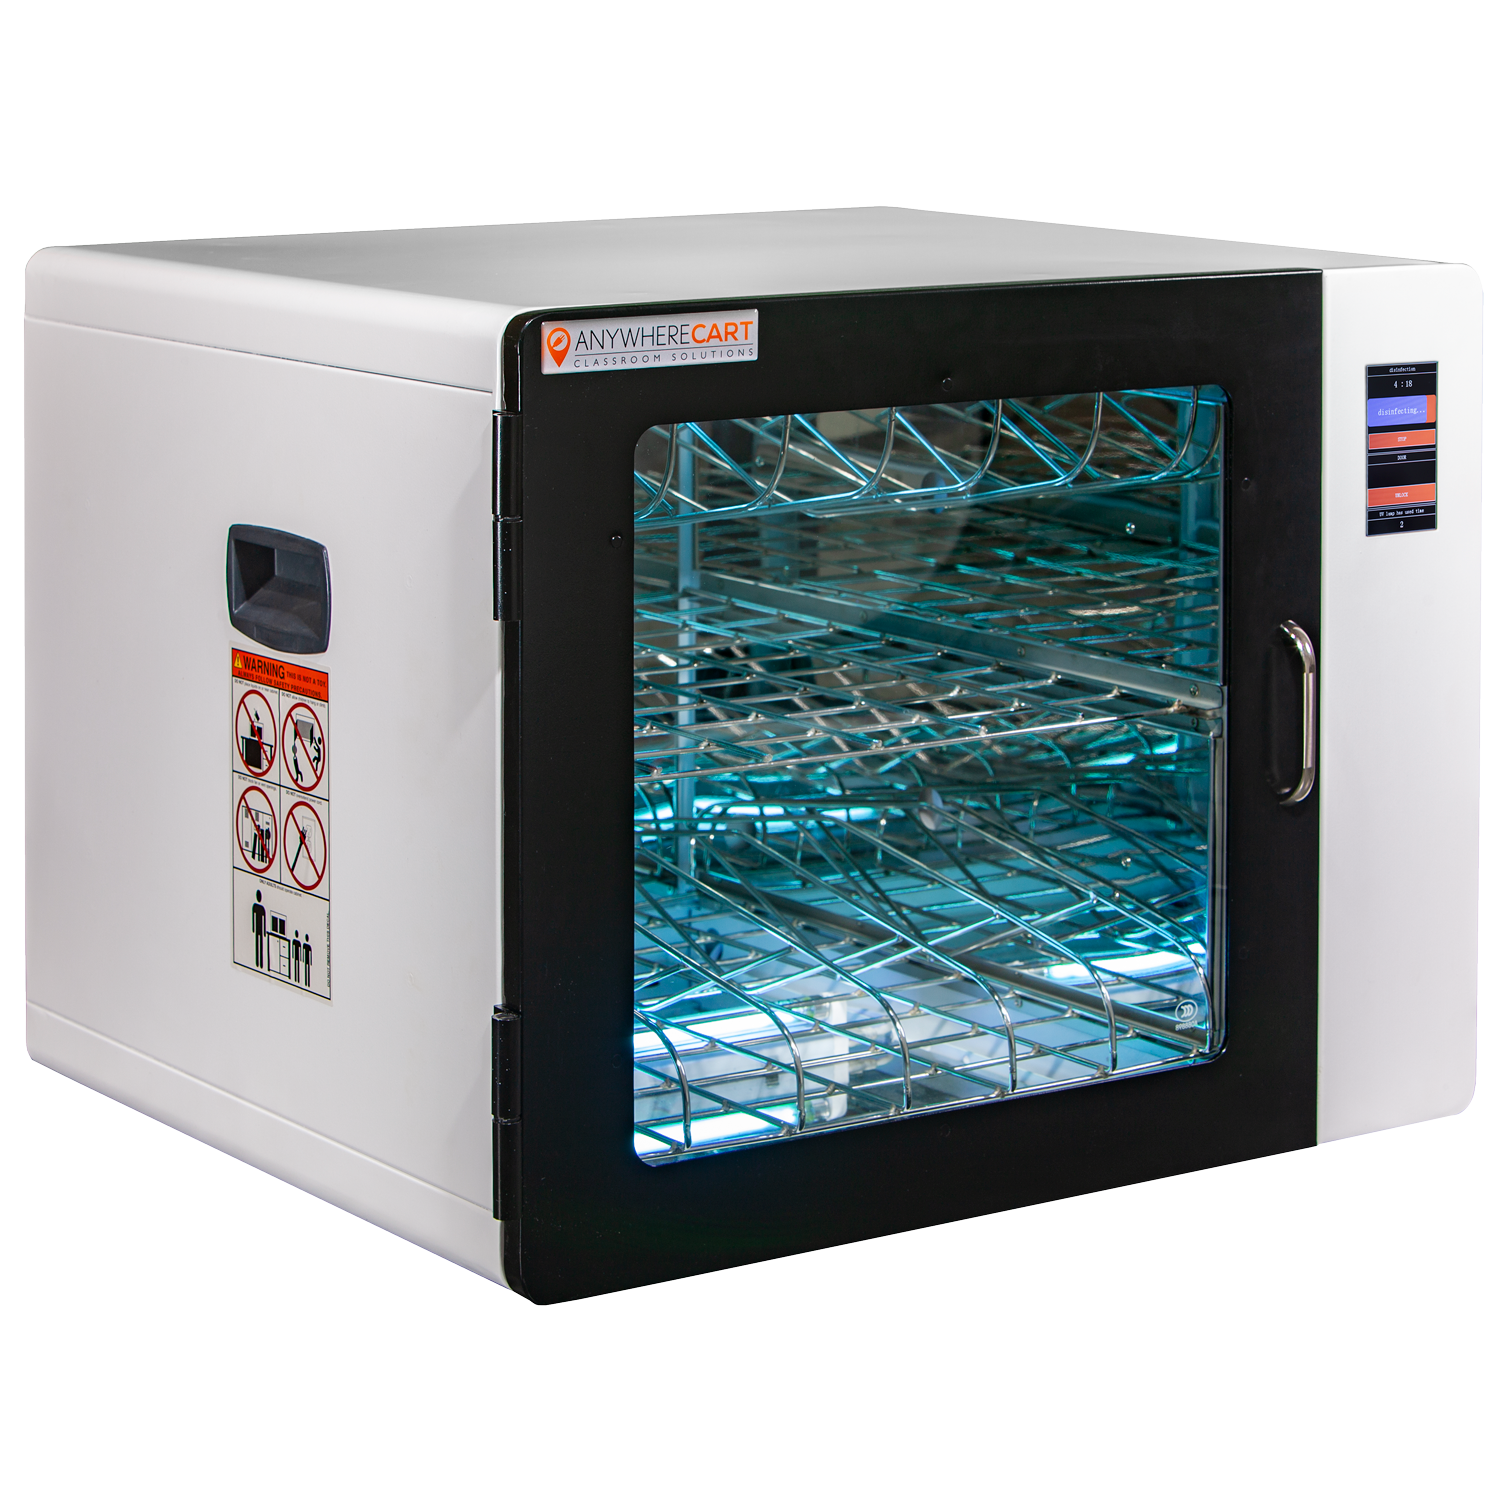 Anywhere Cart AC-CLEAN: Configurable UVC Sanitizing Cabinet - Closed image